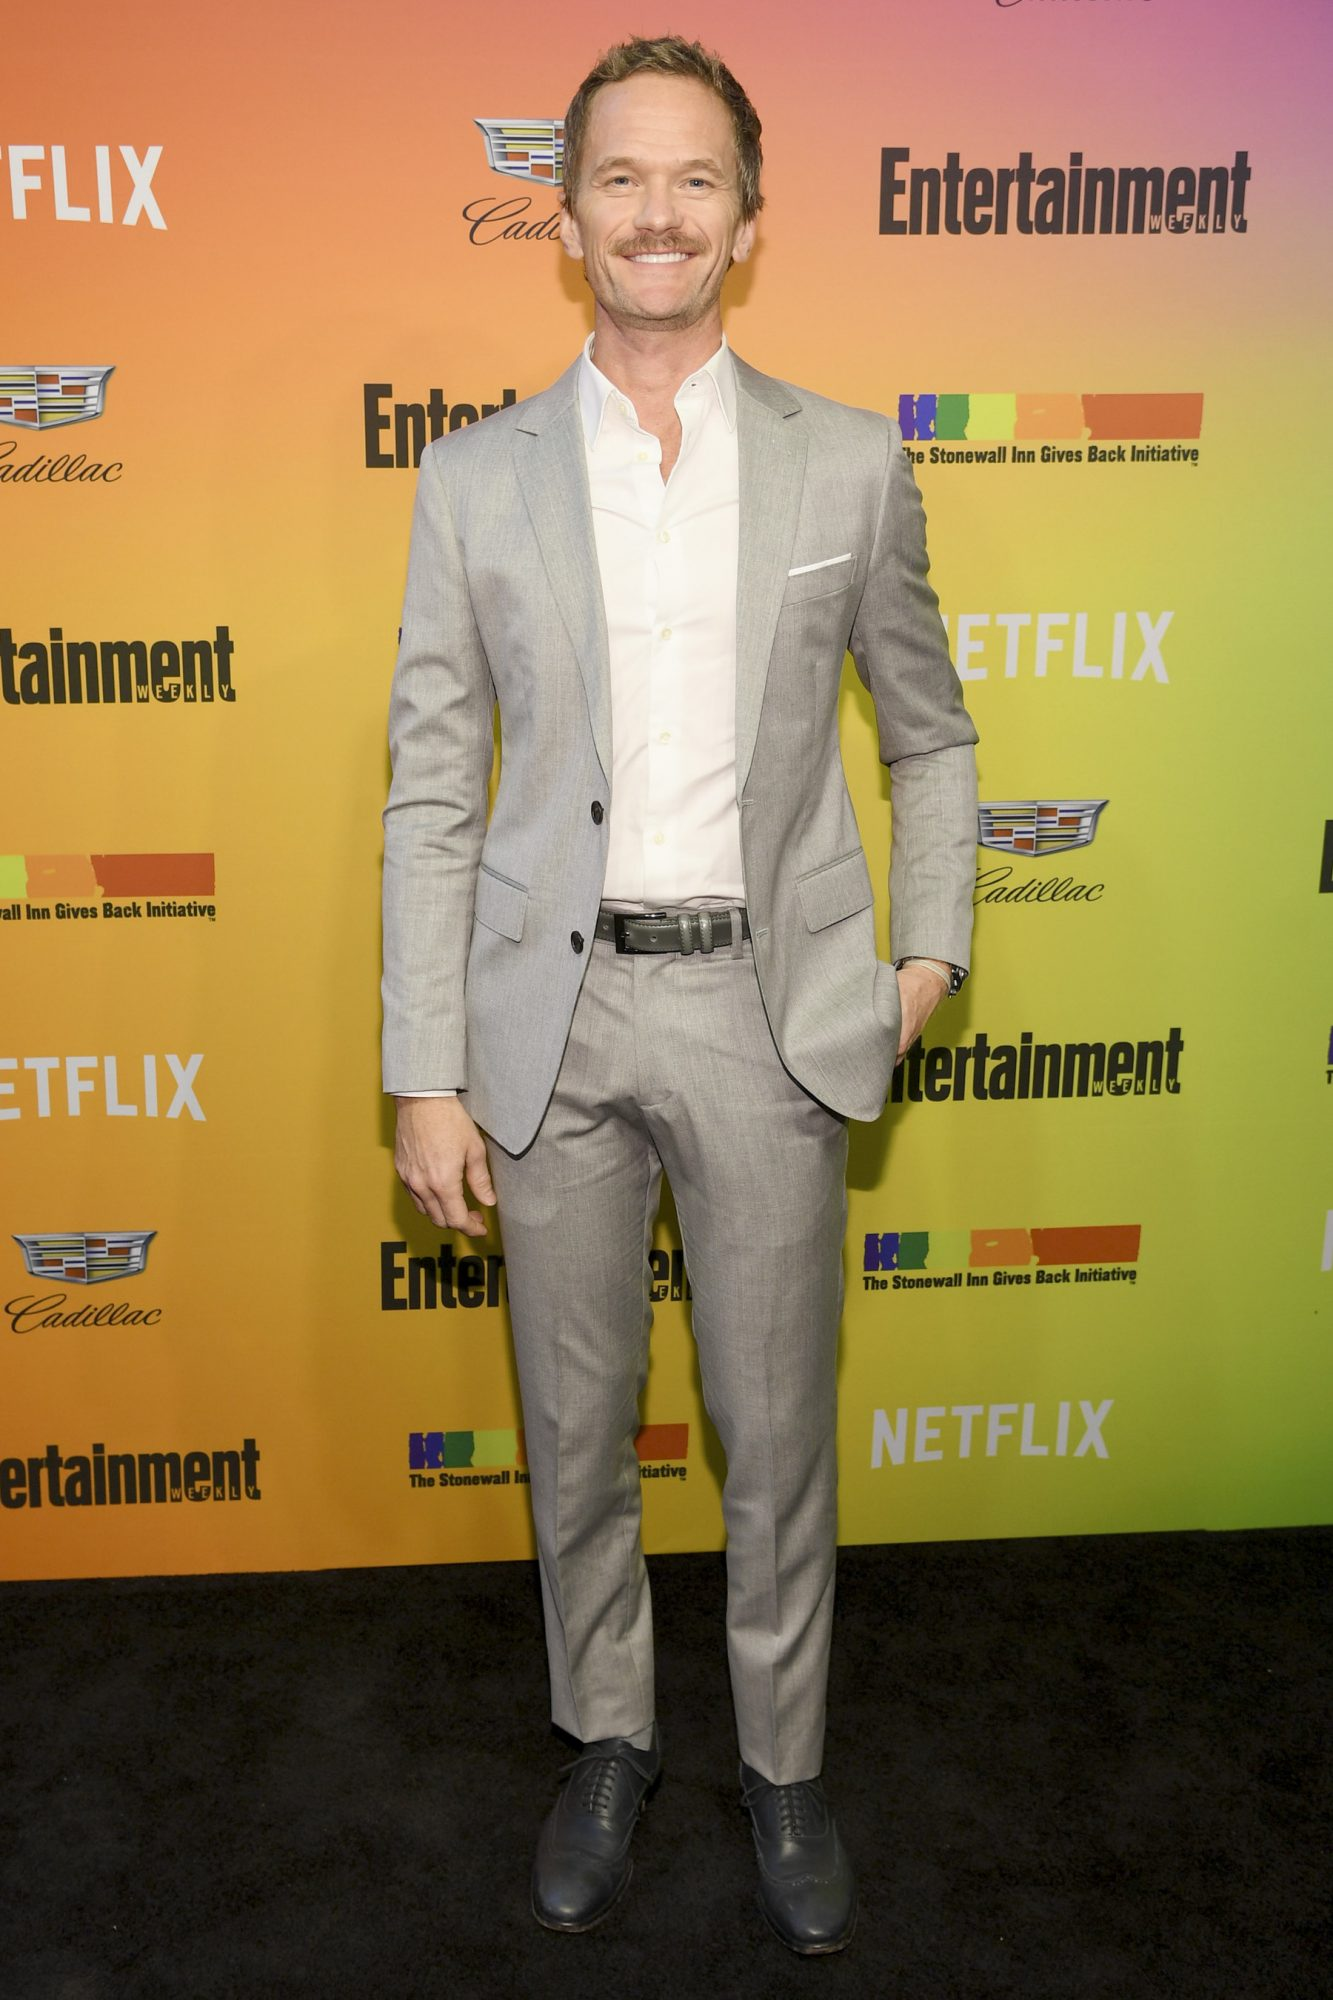 NEW YORK, NEW YORK - JUNE 05: Neil Patrick Harris attends as Entertainment Weekly Celebrates Its Annual LGBTQ Issue at the Stonewall Inn on June 05, 2019 in New York City. (Photo by Dimitrios Kambouris/Getty Images for Entertainment Weekly)